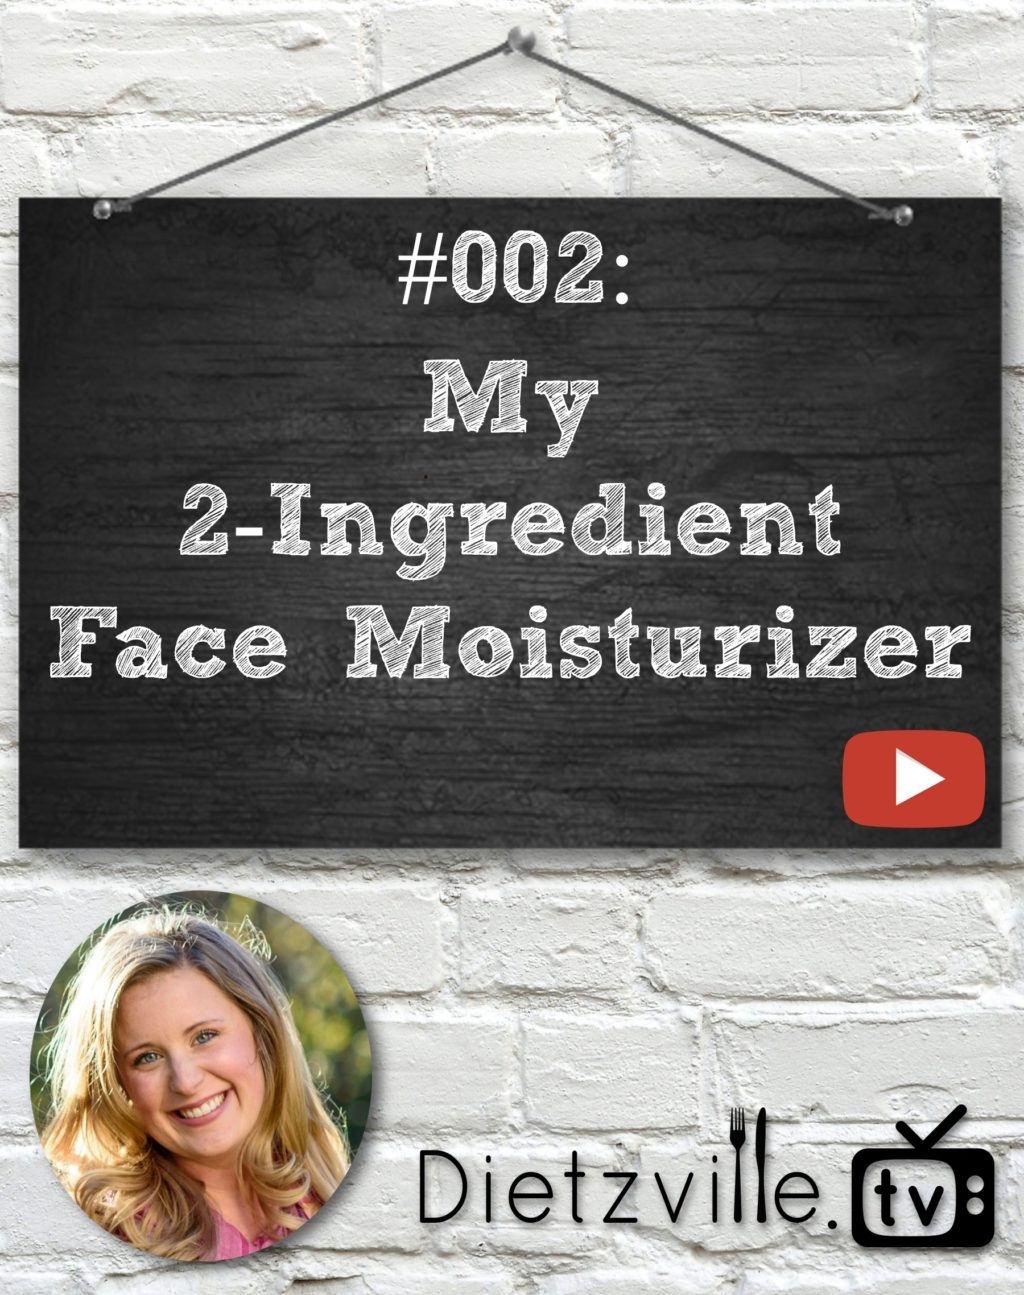 Dietzville.TV #002: My 2-Ingredient Face Moisturizer | I am almost 33, and people tell me I look 25 to 27 years old... How is this possible?! I take care of my skin with this healing, 2-ingredient face moisturizer! I believe it's made such a difference in the way my skin looks and feels... even minimizing old scars and age spots! Join real-life me without makeup as I mix up my moisturizer and apply it on camera. | Dietzville.tv